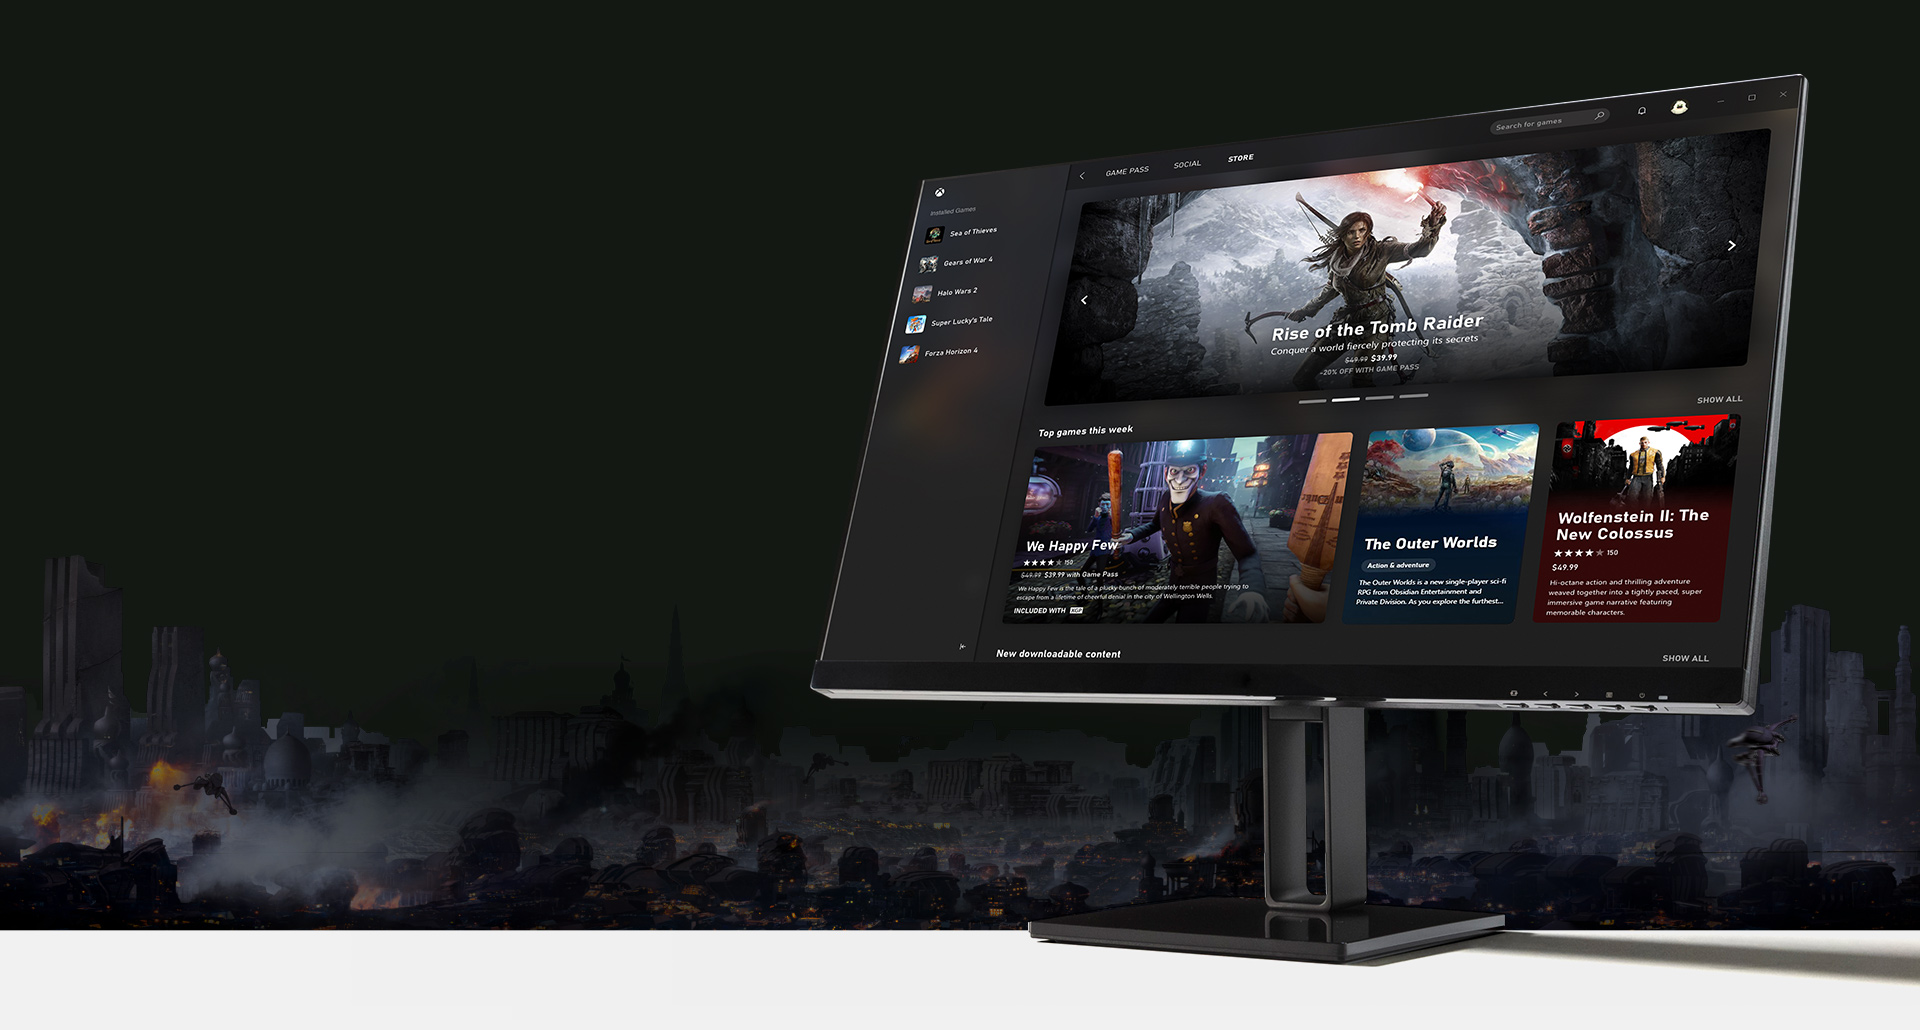 Monitor con la interfaz de usuario de la app Xbox Game Pass para PC